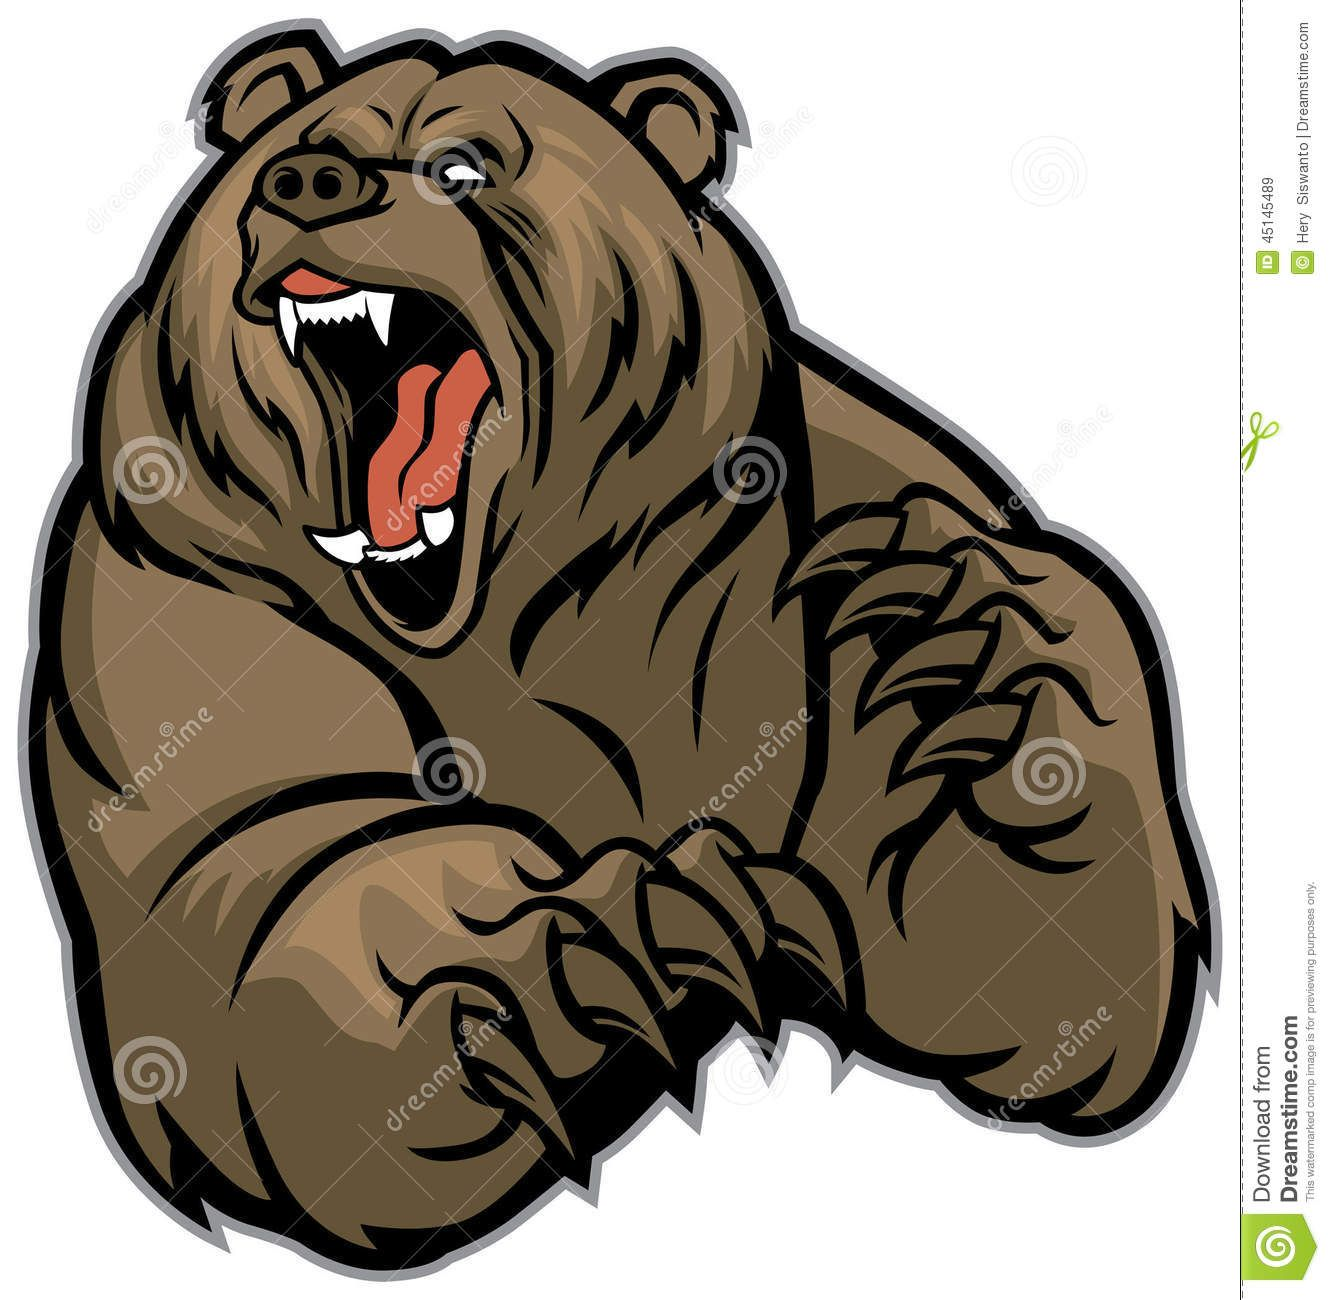 Grizzly Bear Mascot.